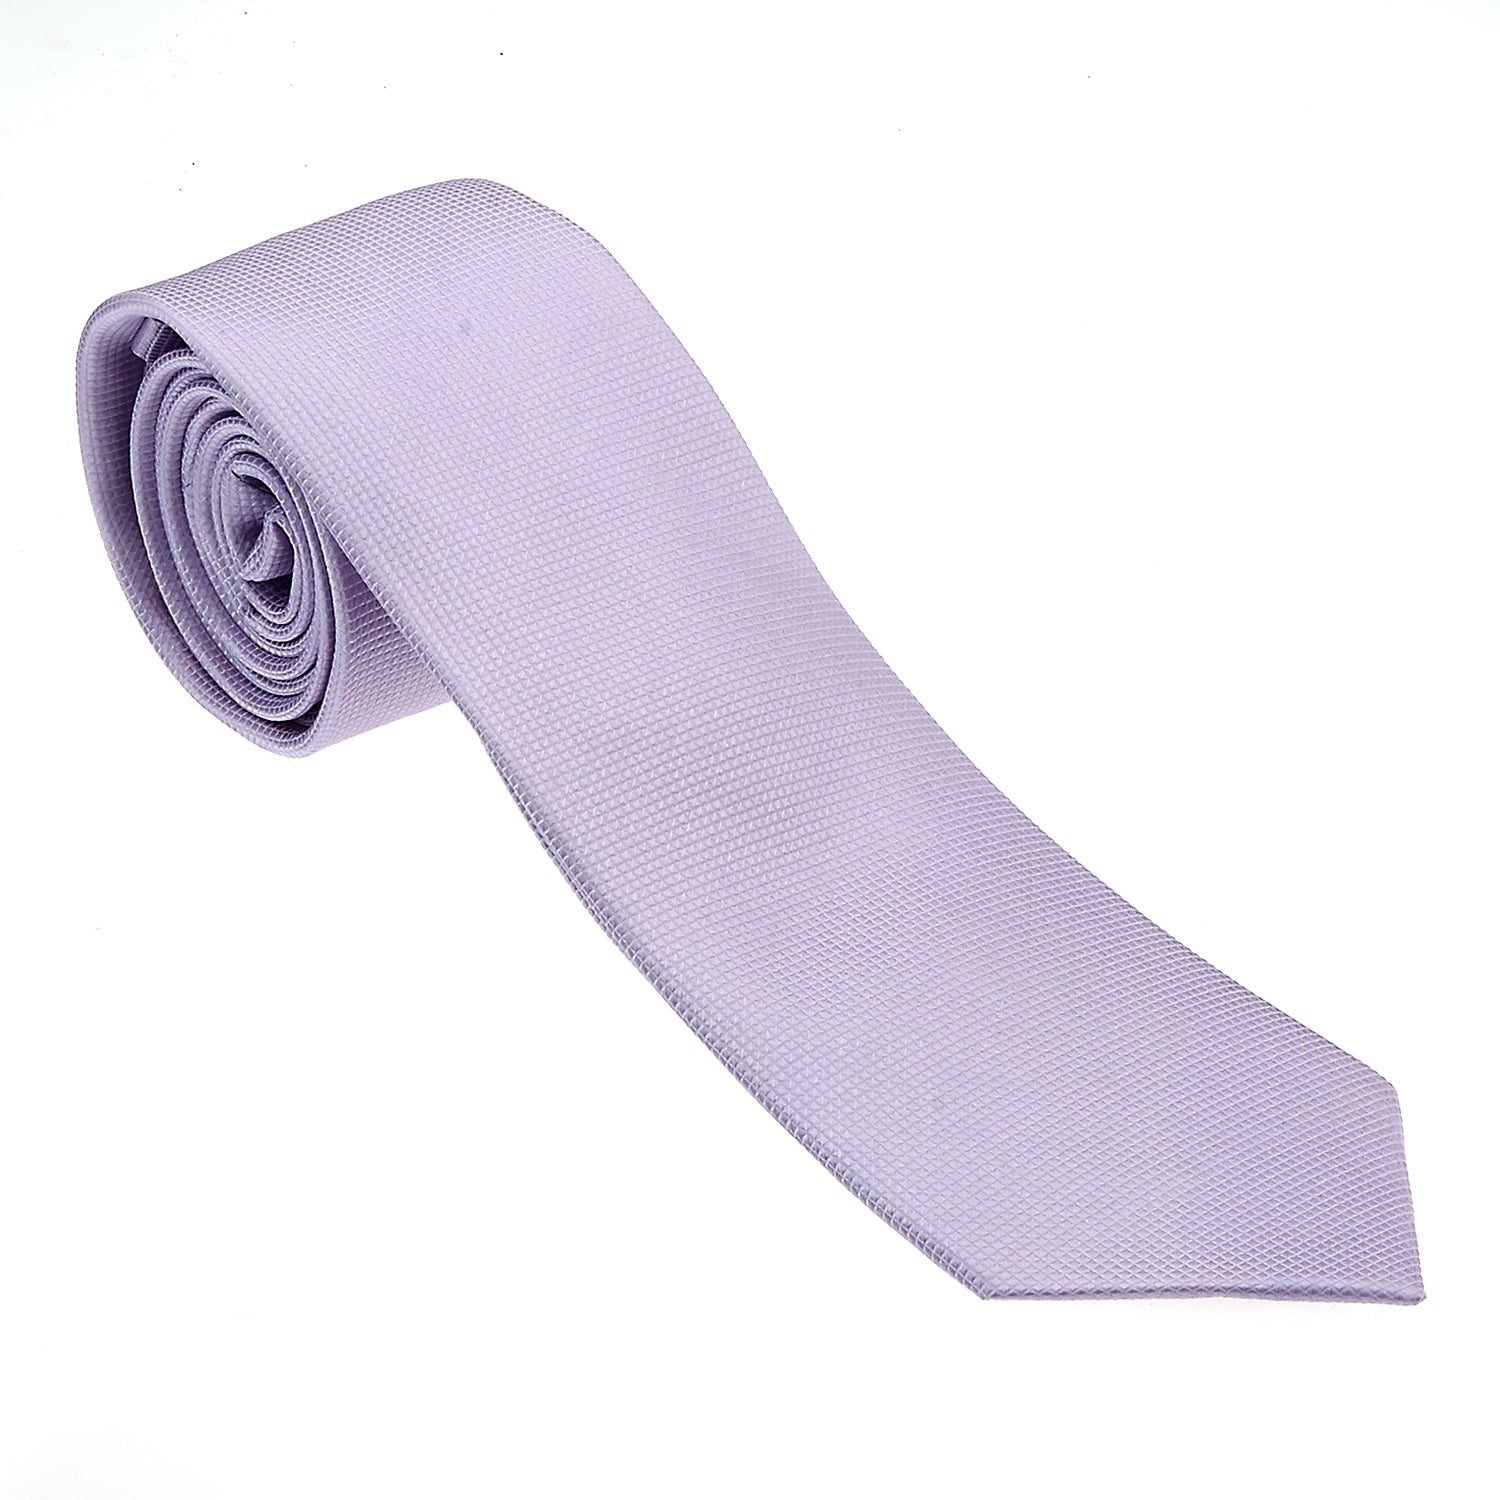 Lavender Tie-The Suit Spot-Wedding Suits-Wedding Tuxedos-Groomsmen Suits-Groomsmen Tuxedos-Slim Fit Suits-Slim Fit Tuxedos-Online wedding suits